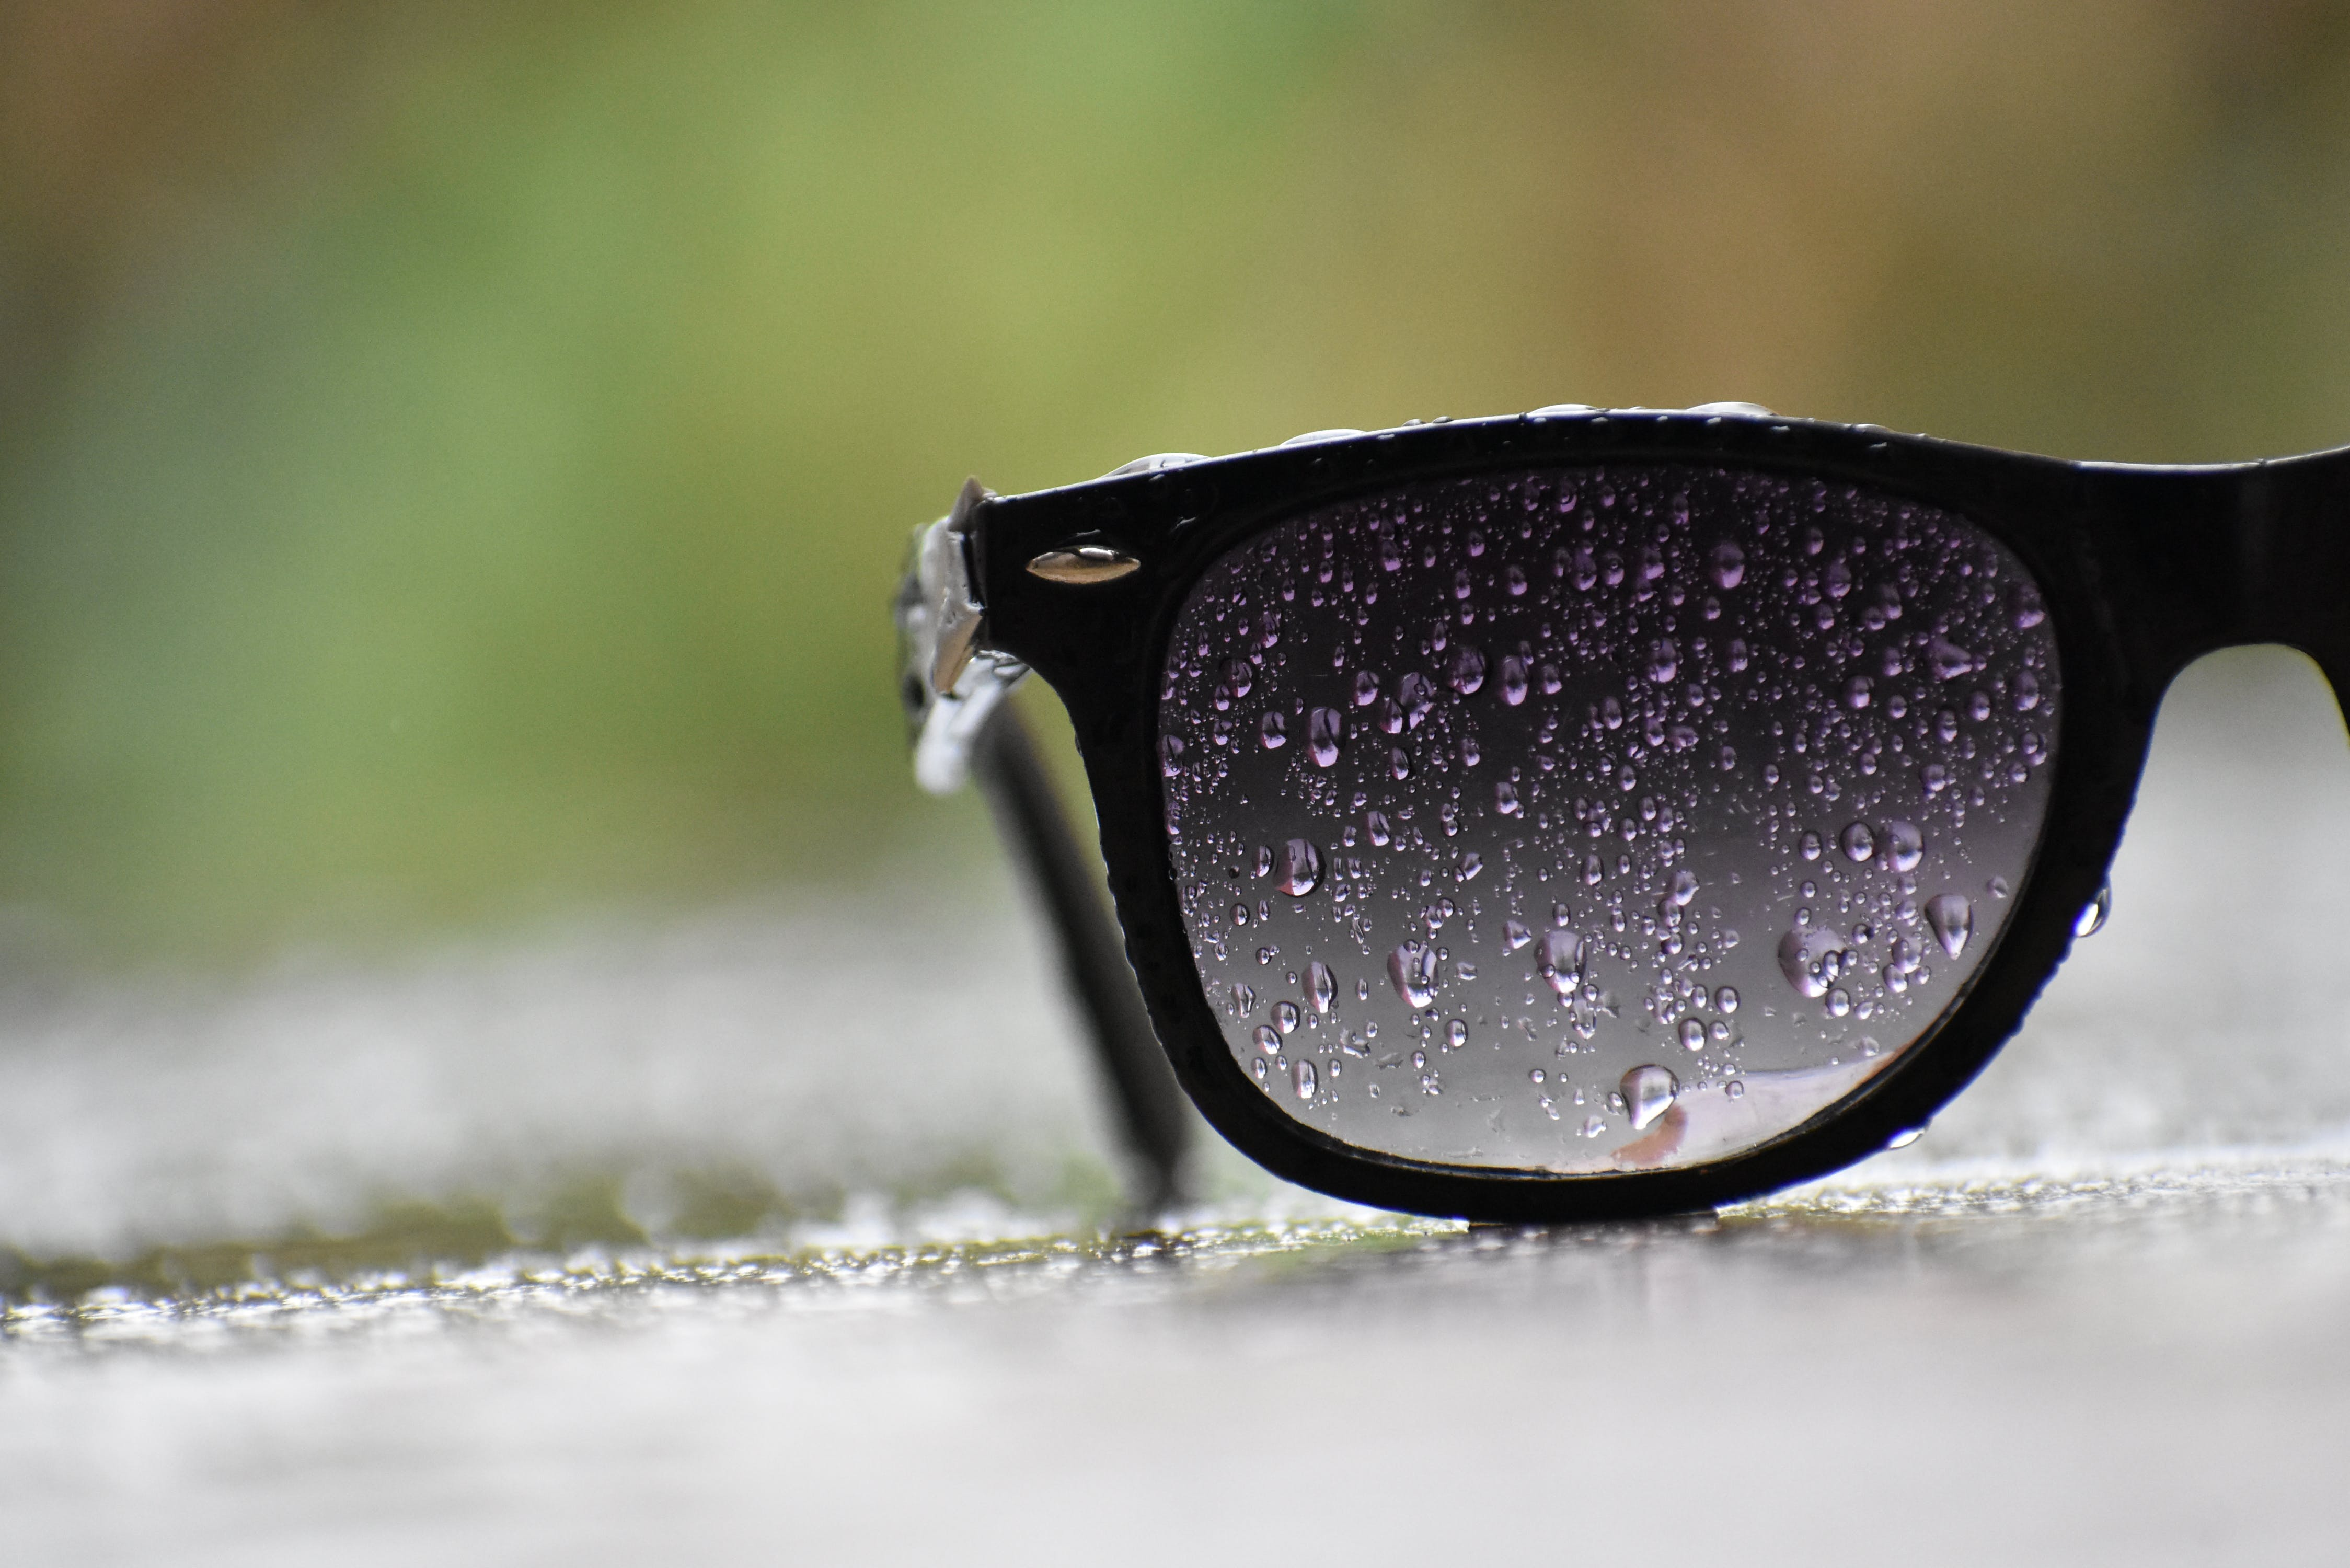 Black Sunglasses With Water Droplets